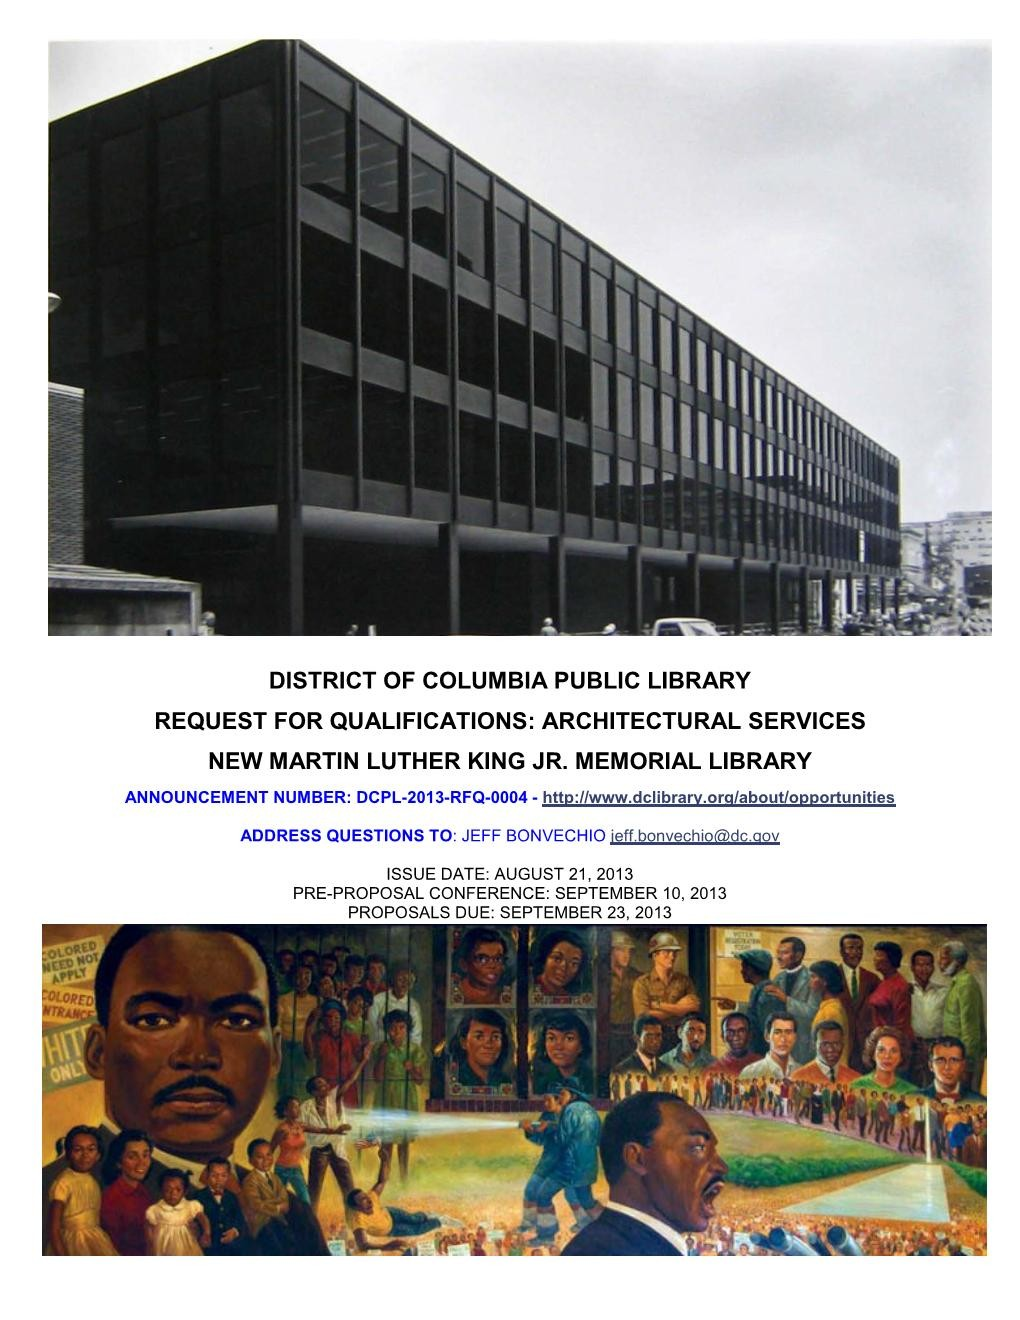 Gallery of Request for Qualifications: MLK Jr  Memorial